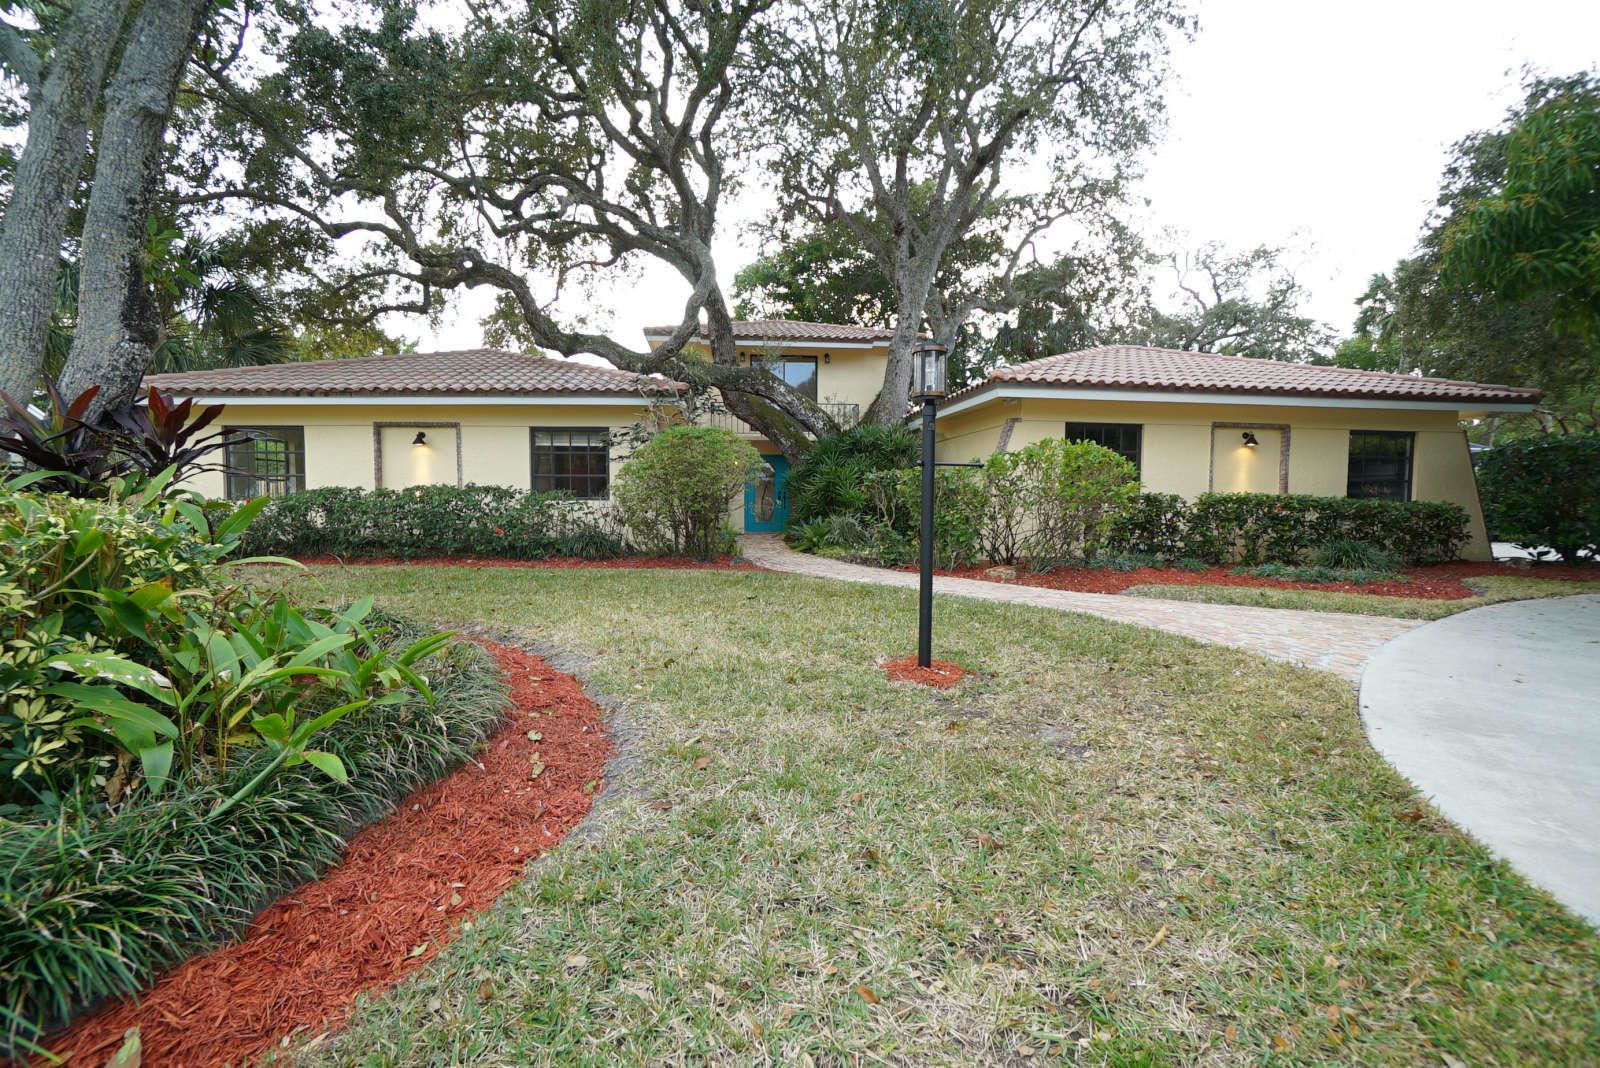 5 Banyan Road, Sewalls Point, FL 34996 - #: RX-10690917